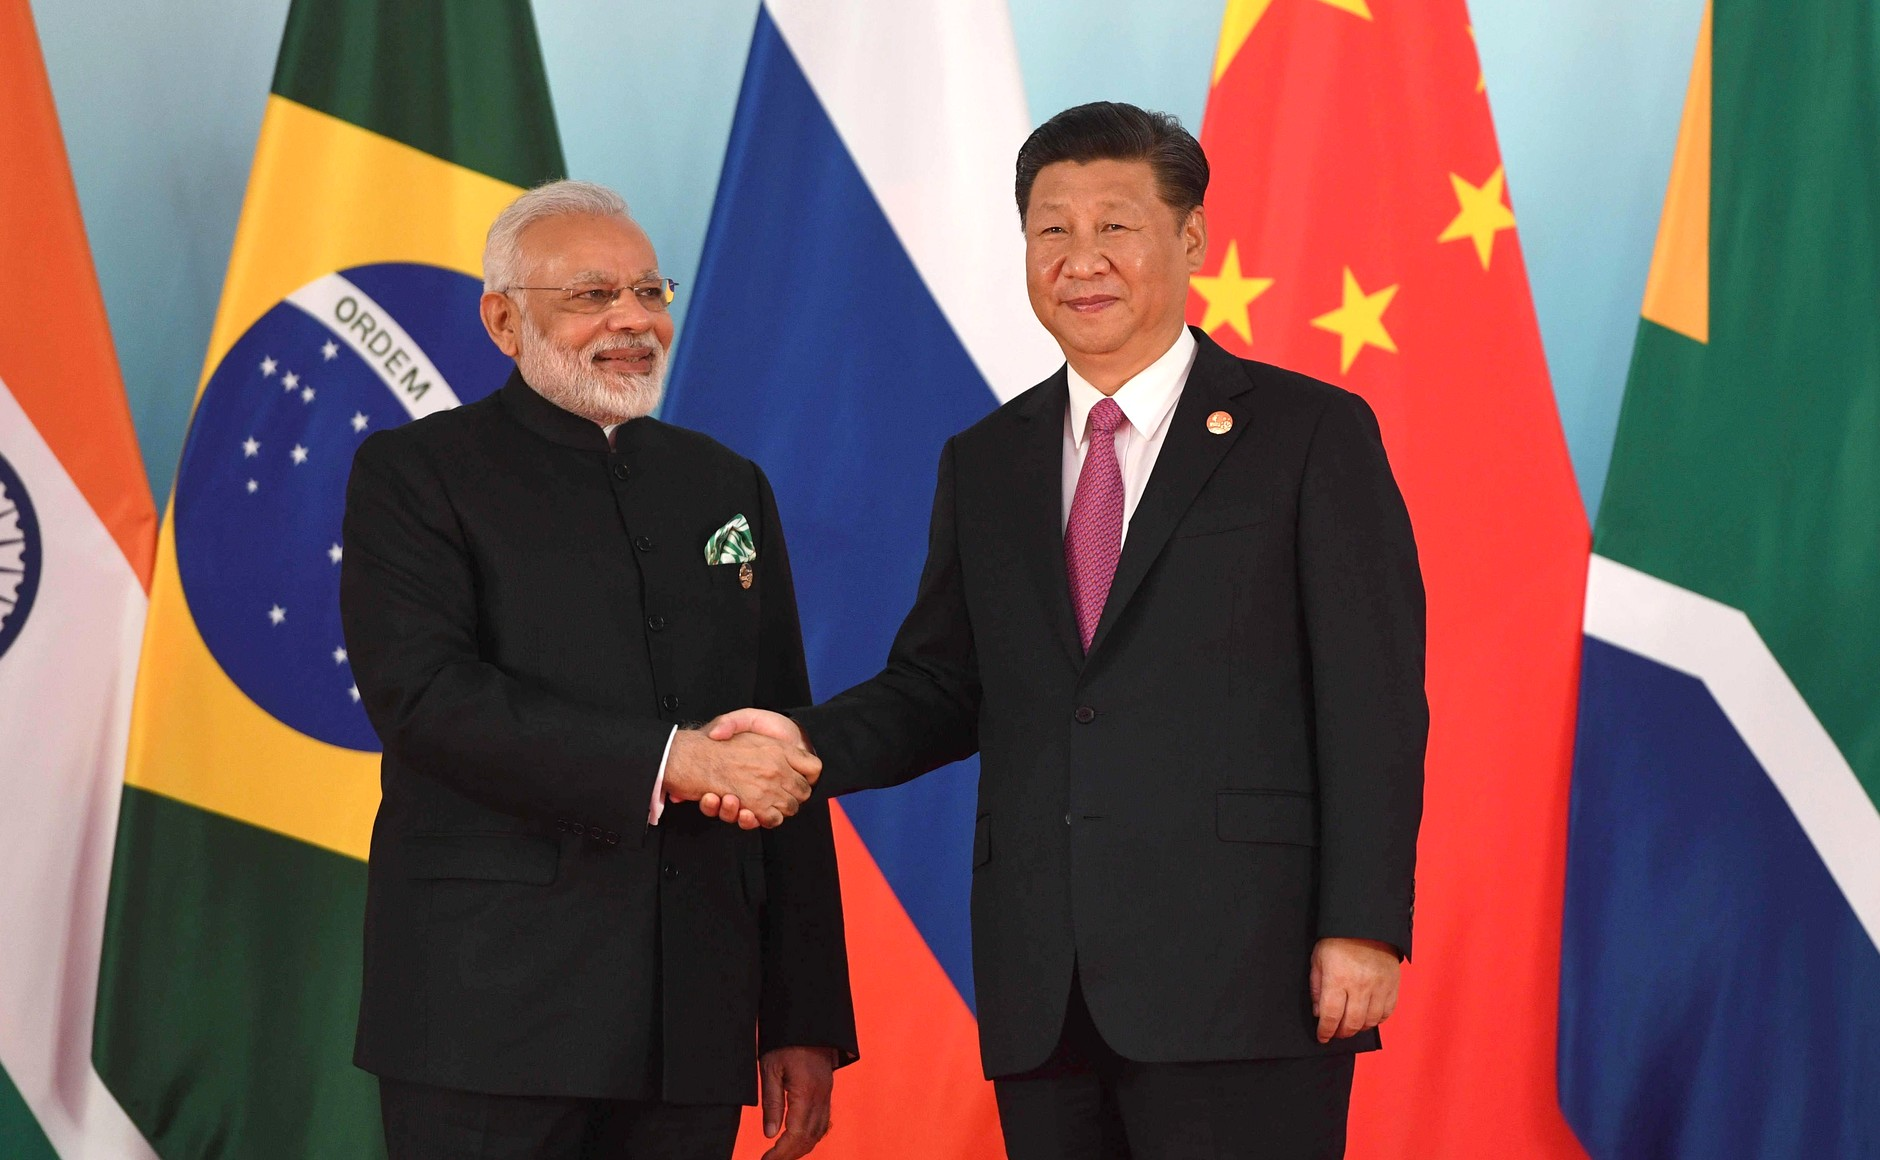 https://commons.wikimedia.org/wiki/File:Prime_Minister_of_India_Narendra_Modi_and_President_of_China_Xi_Jinping_before_the_beginning_of_the_2017_BRICS_Leaders%27_meeting.jpg